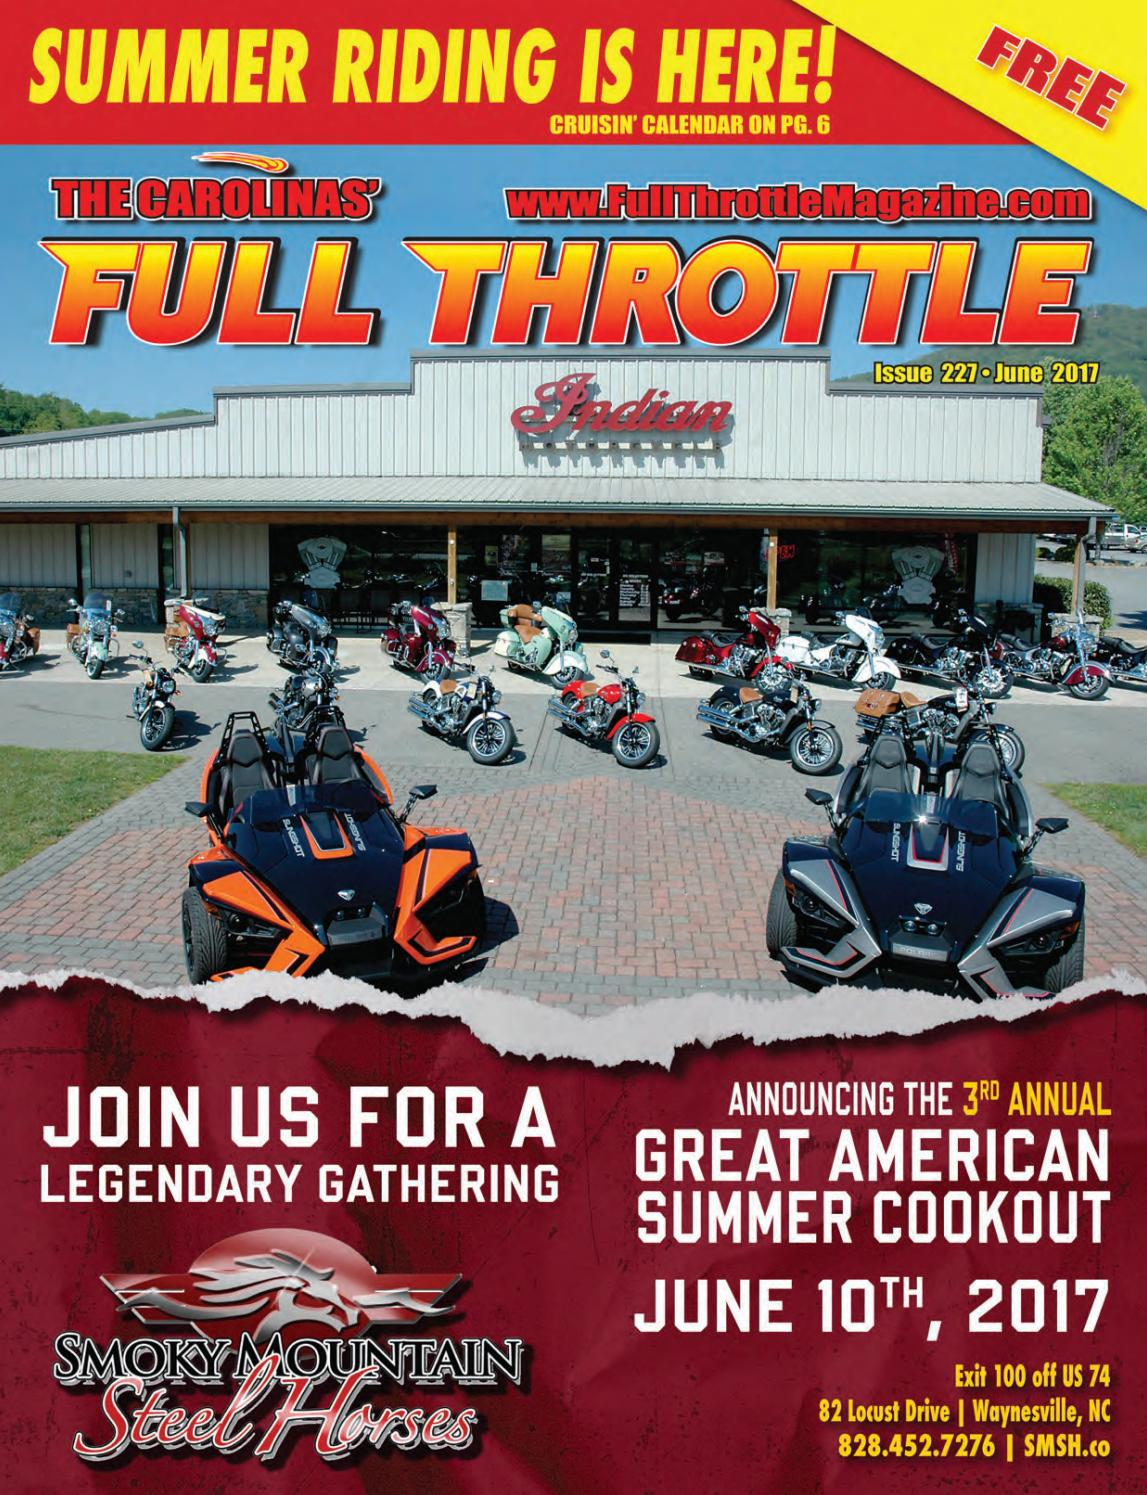 June 2017 issue 227 by the carolinas 39 full throttle - Cruisin carolina magazine ...